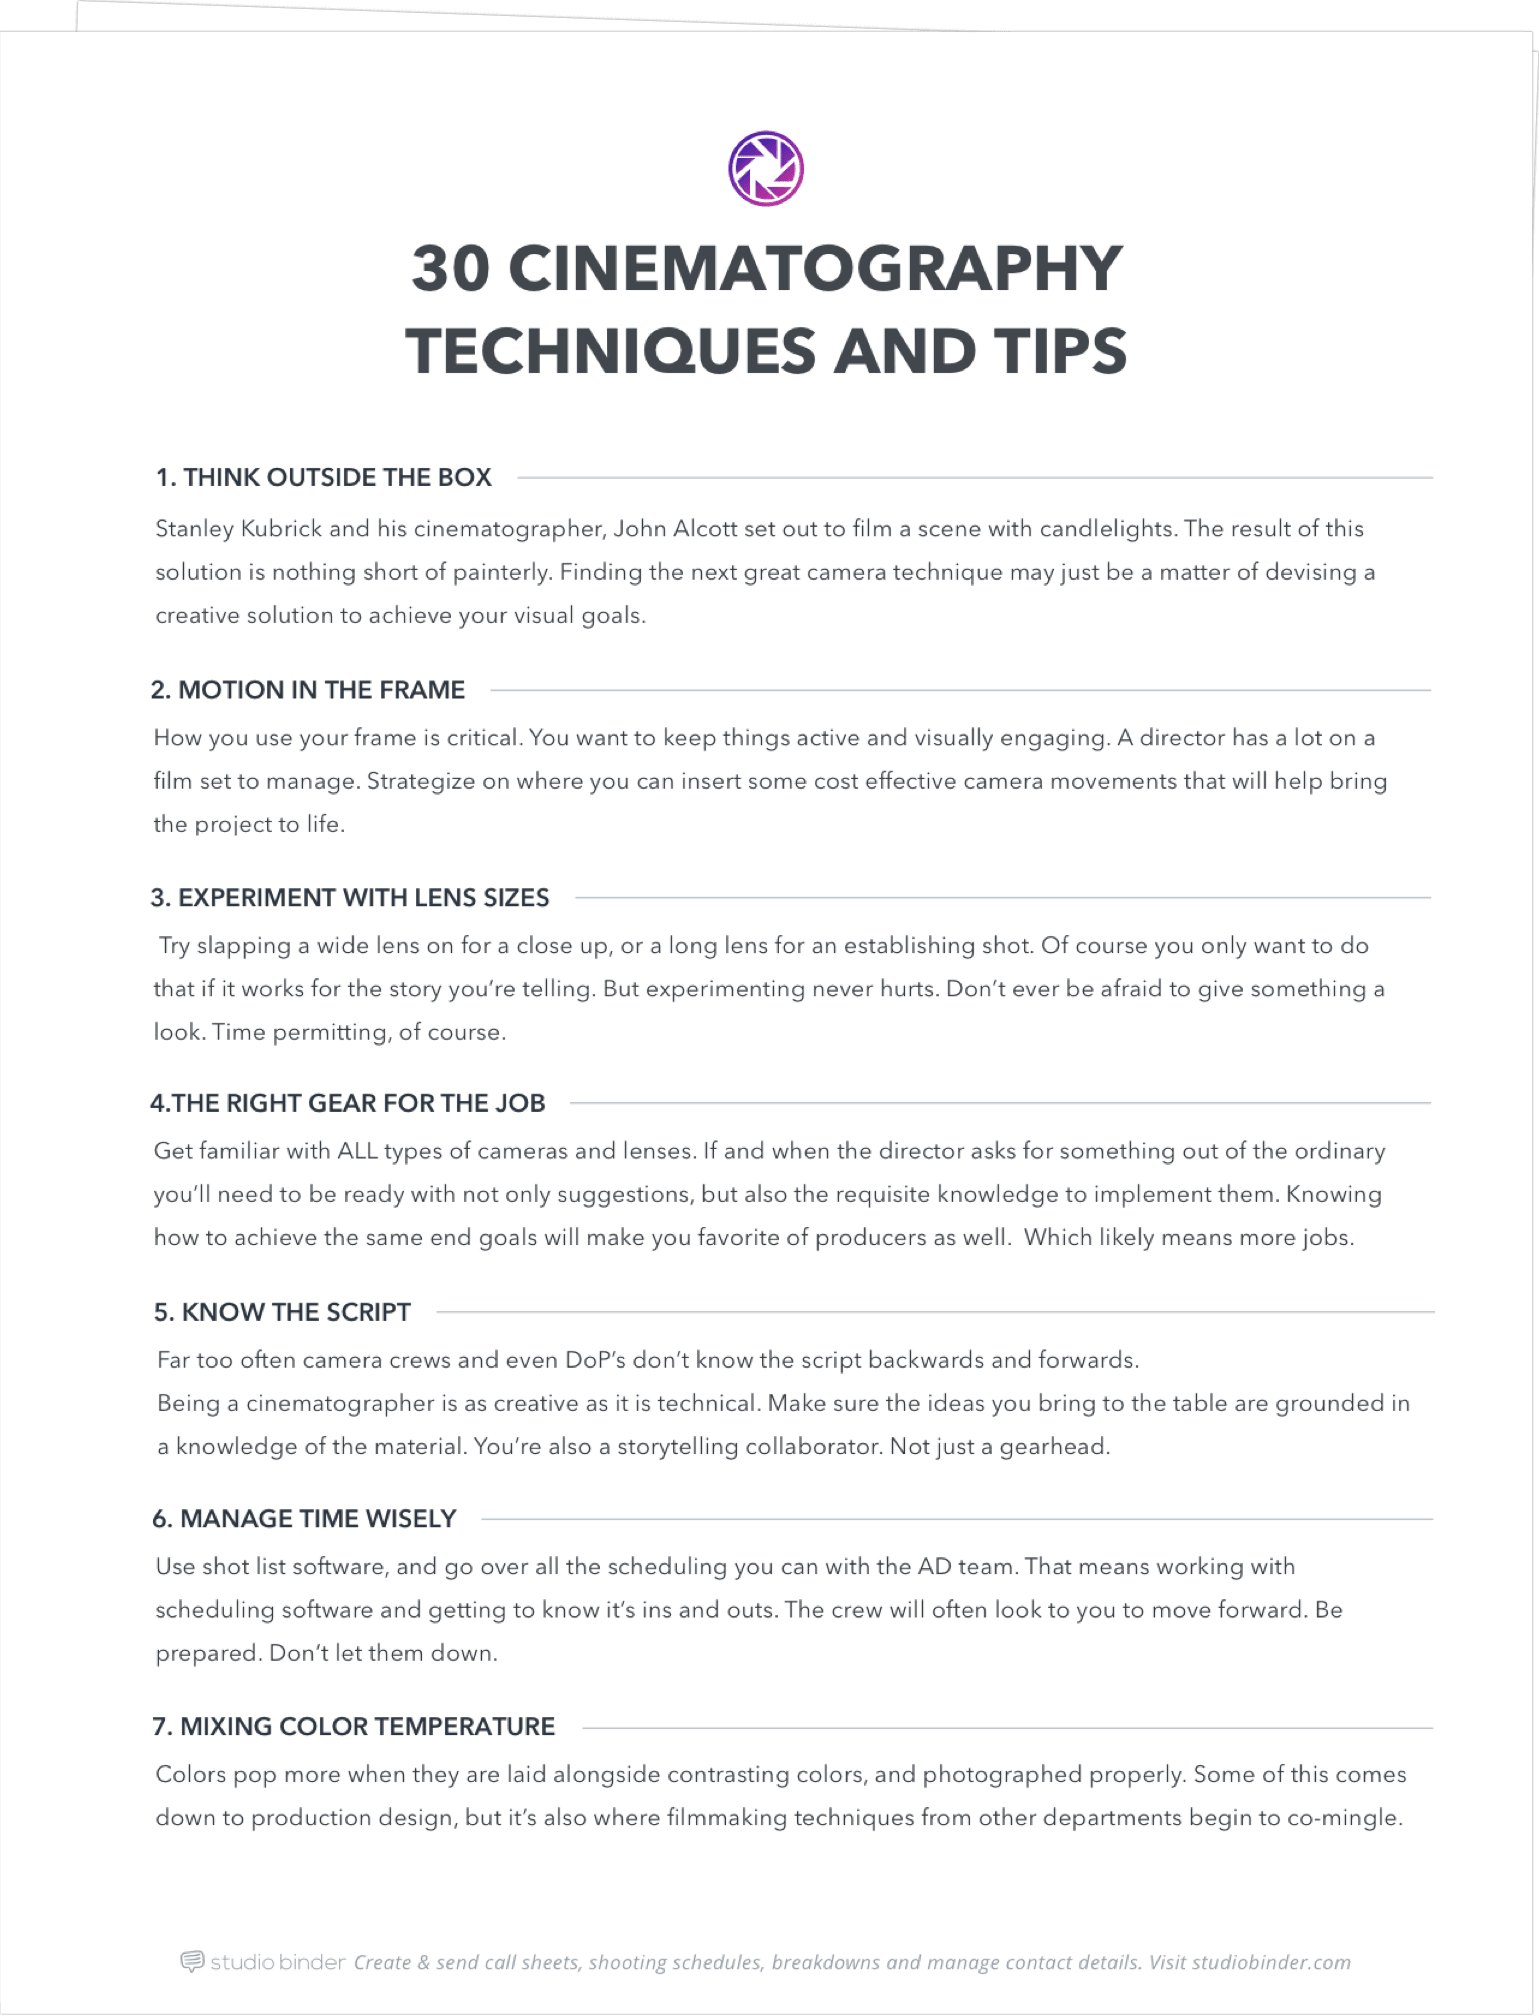 30 Cinematography Techniques And TIps